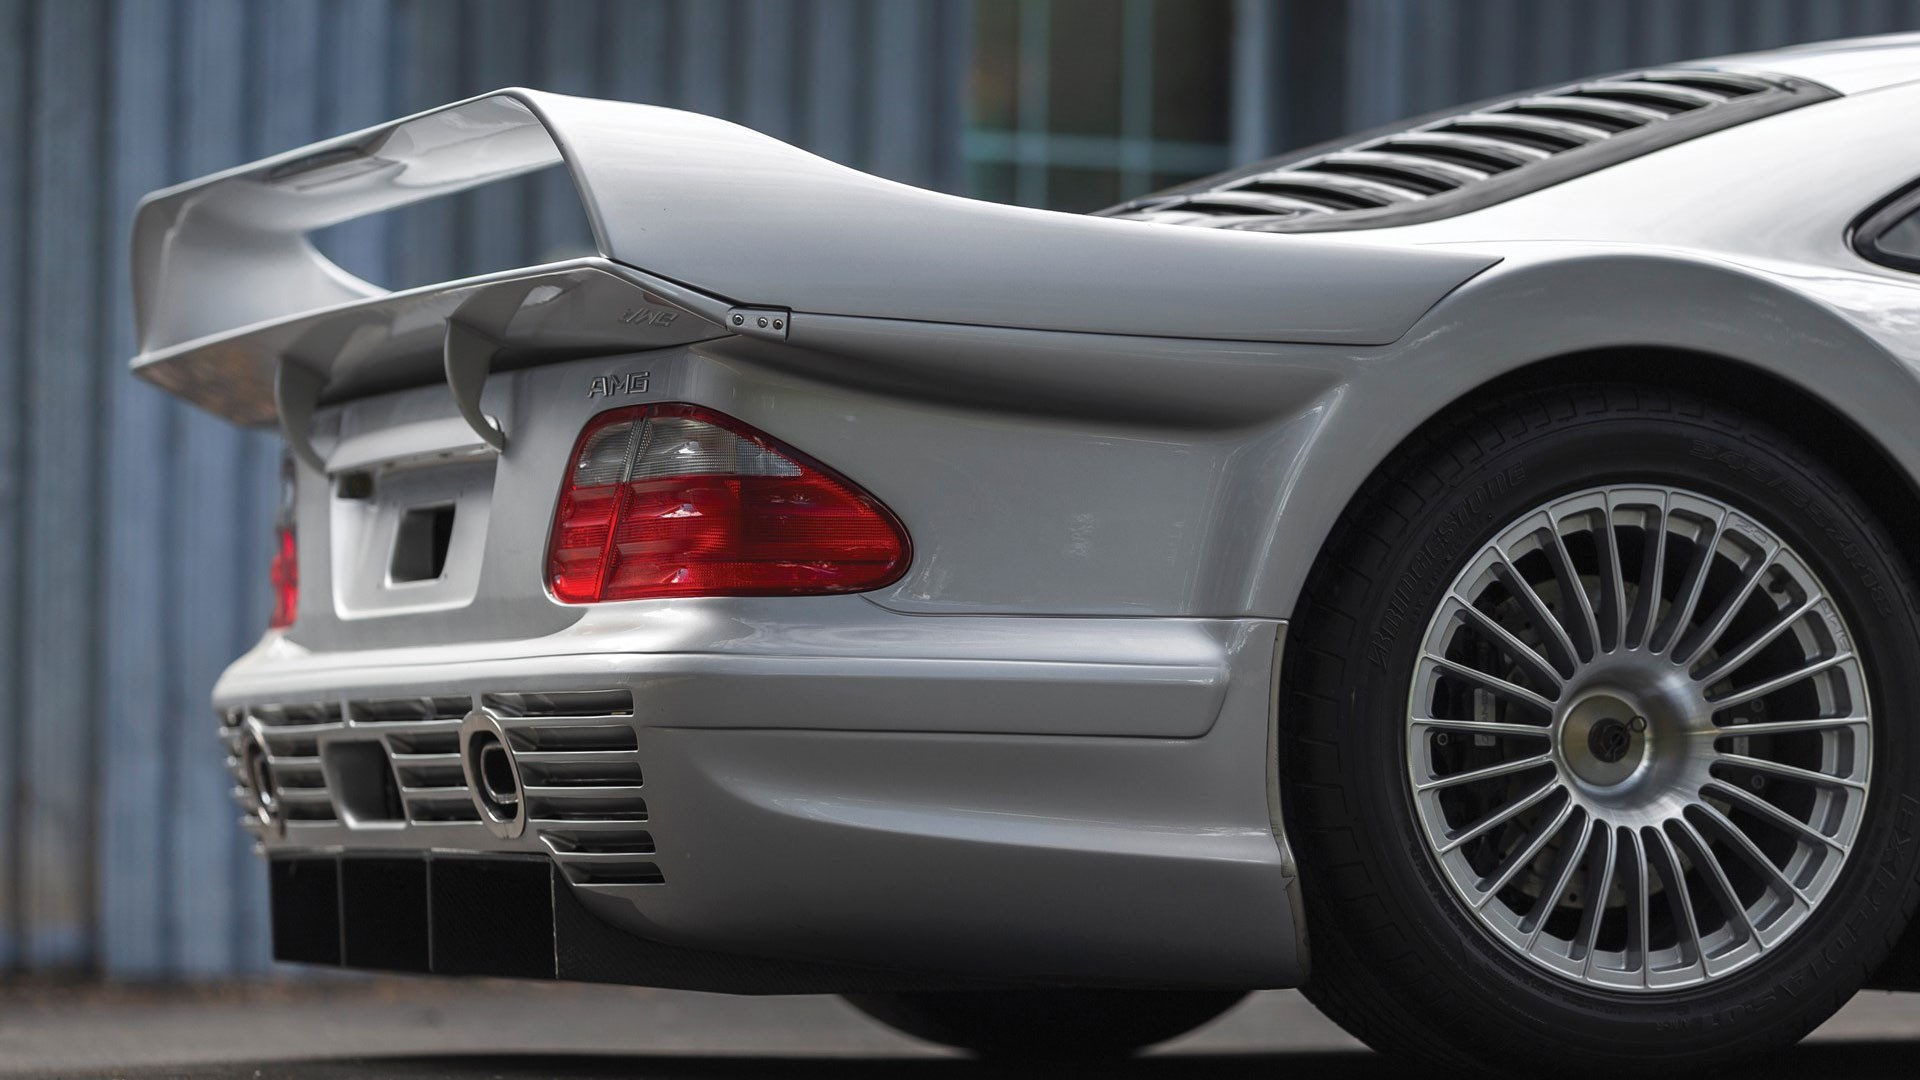 This Stunning Mercedes Clk Gtr Is Being Sold At Pebble Beach Car